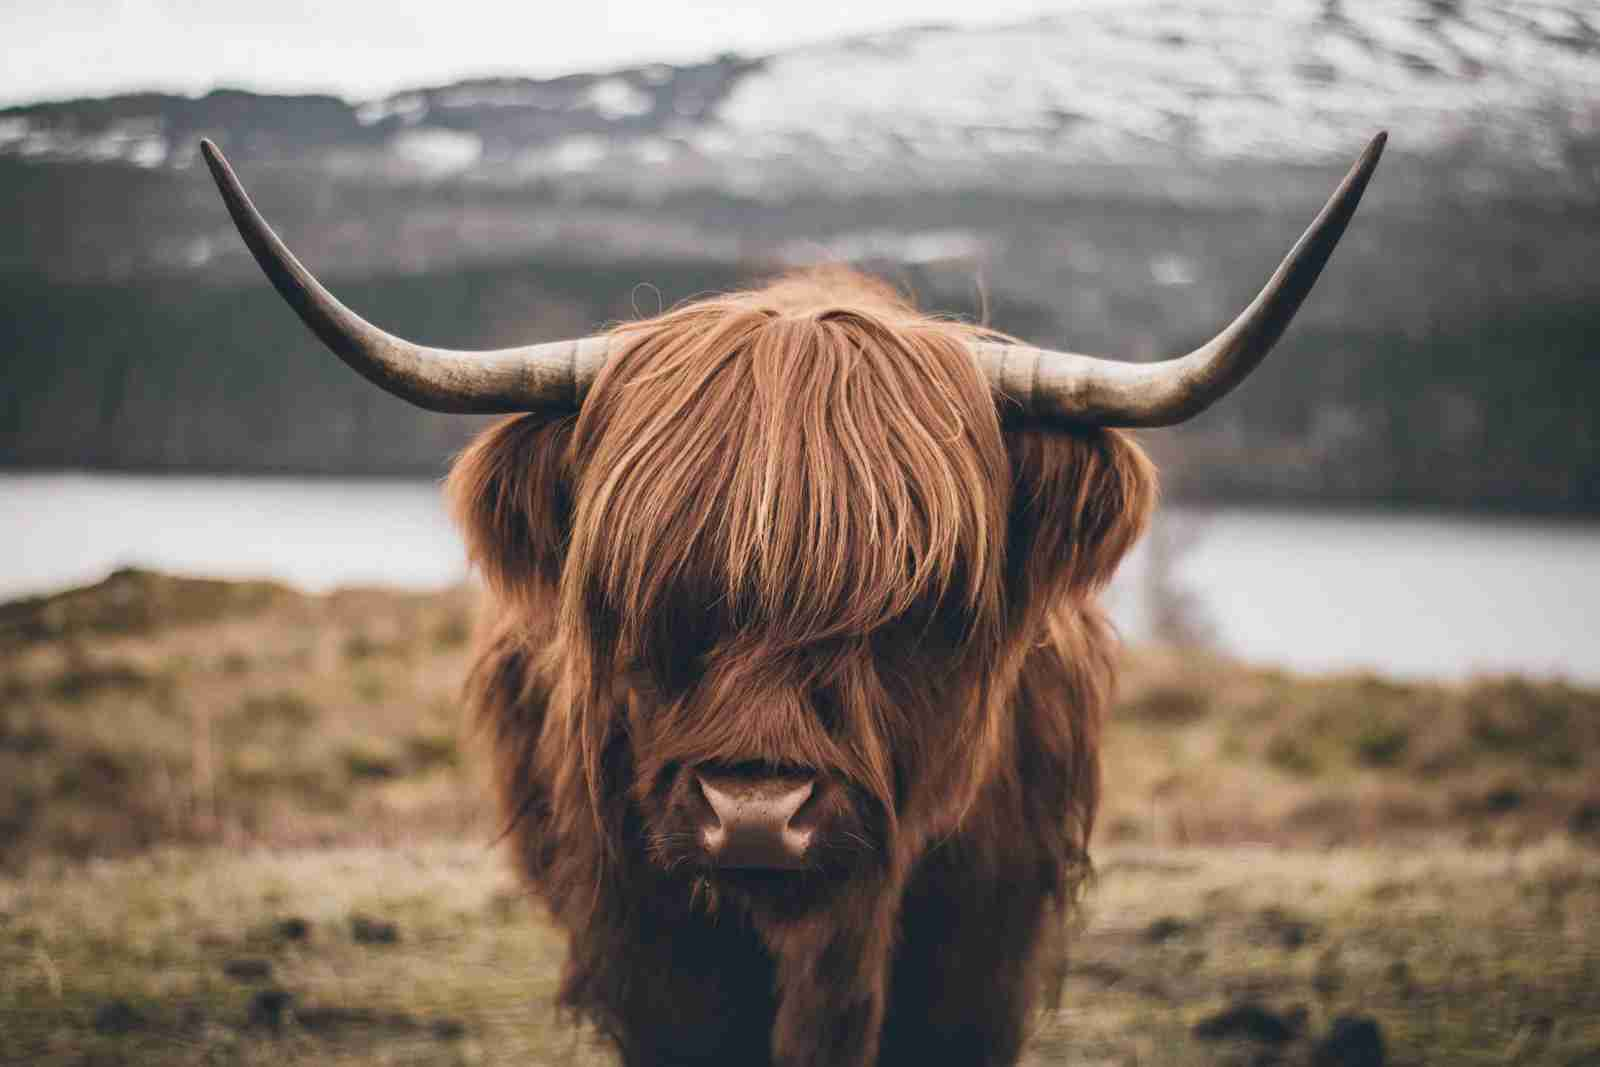 A Scottish Cow. (Photo by Stefan Krzinger/Getty Images)